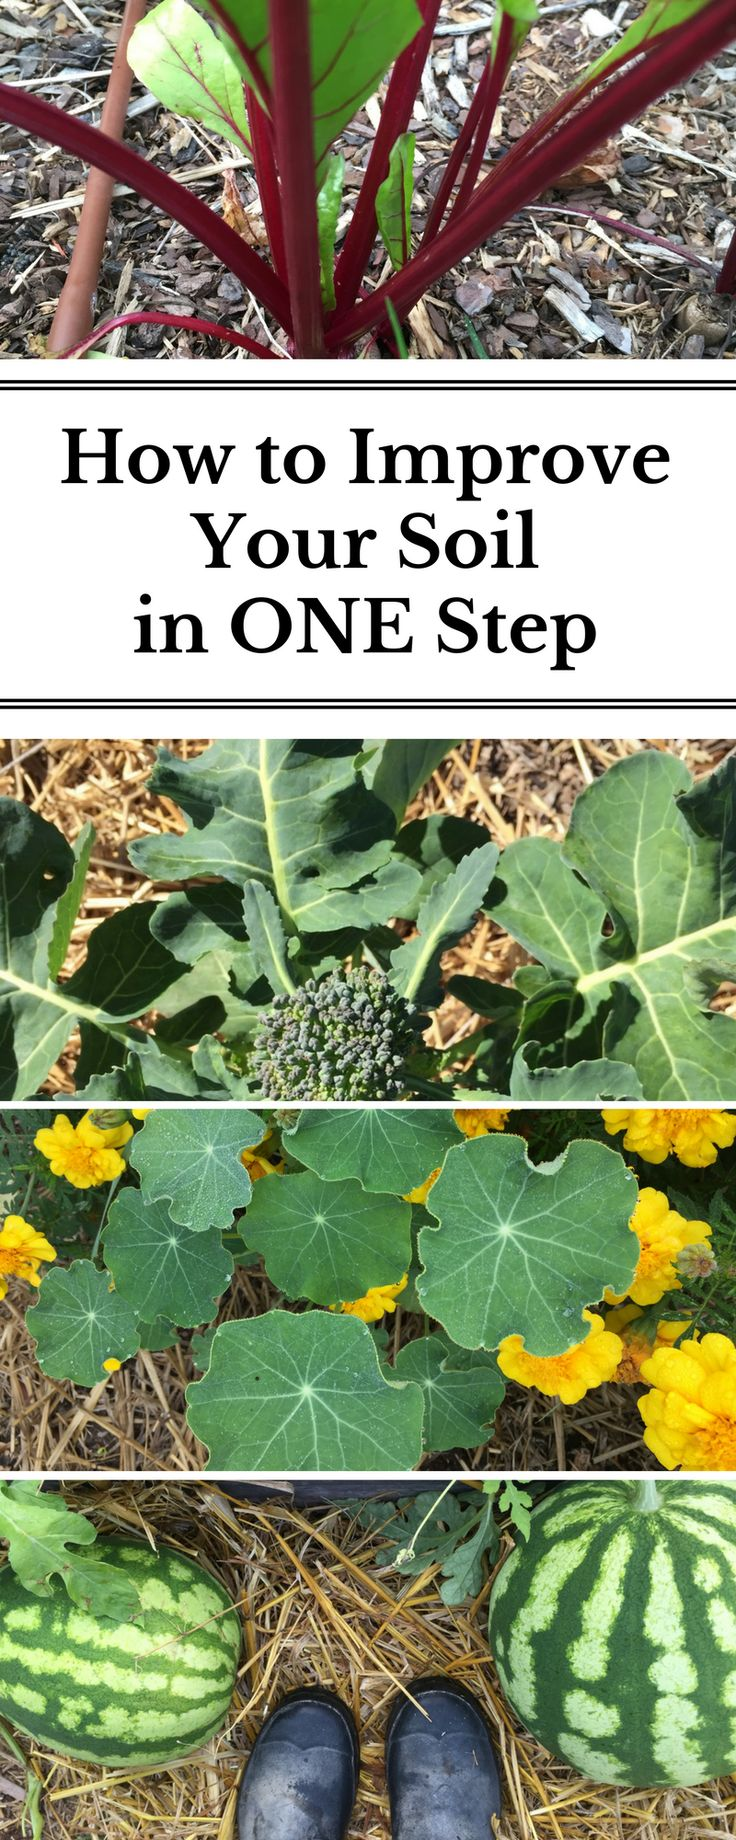 A super simple step to improve the overall health of your soil!